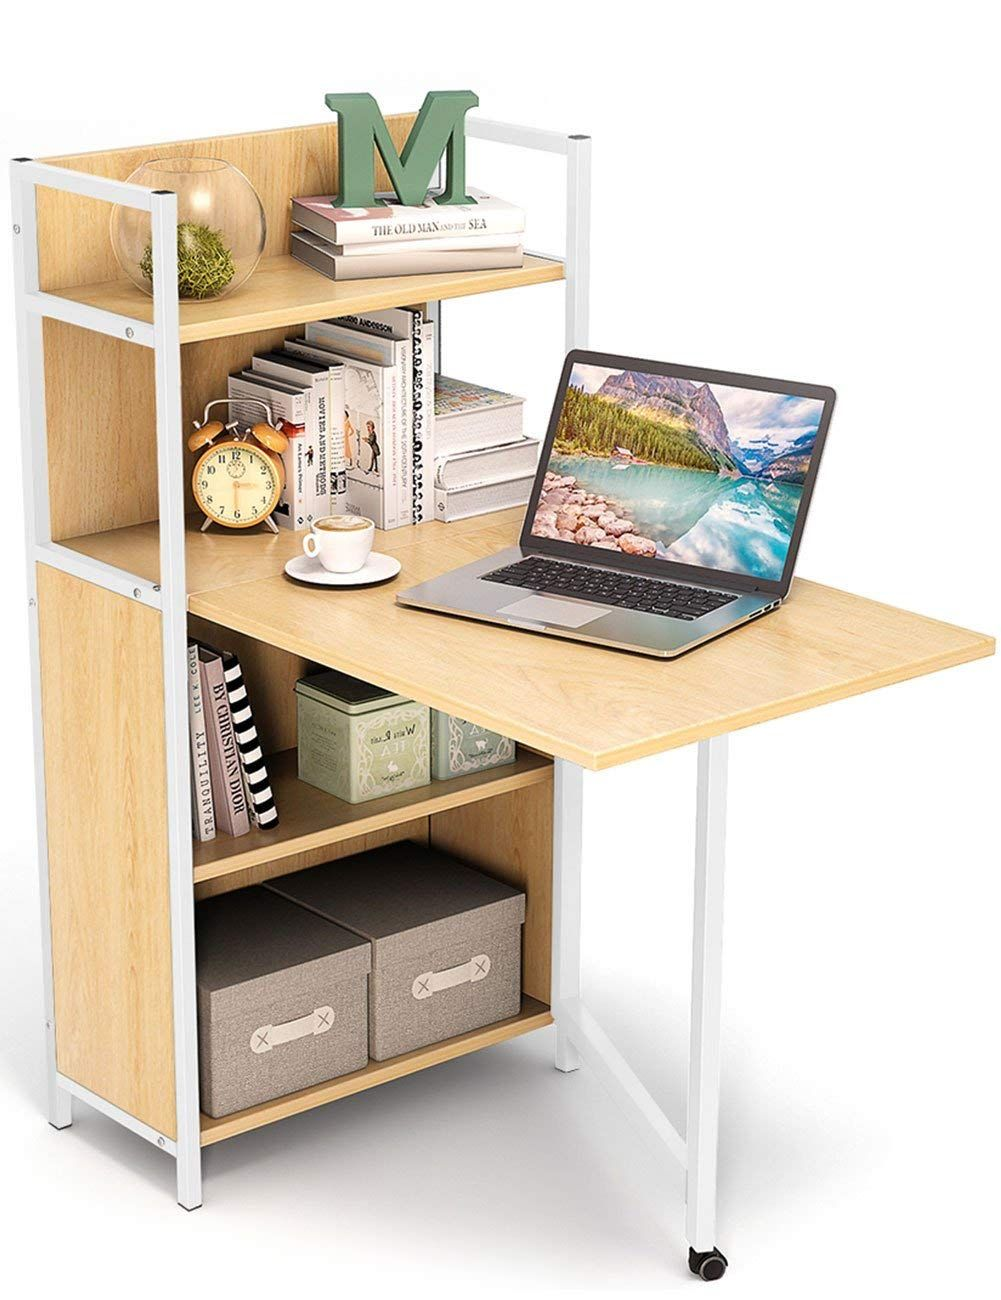 Folding Computer Desk Shelf Space Saving Small Computer Desk Writing Table Desktop Is Foldable It Desks For Small Spaces Bookshelf Desk Floating Desk